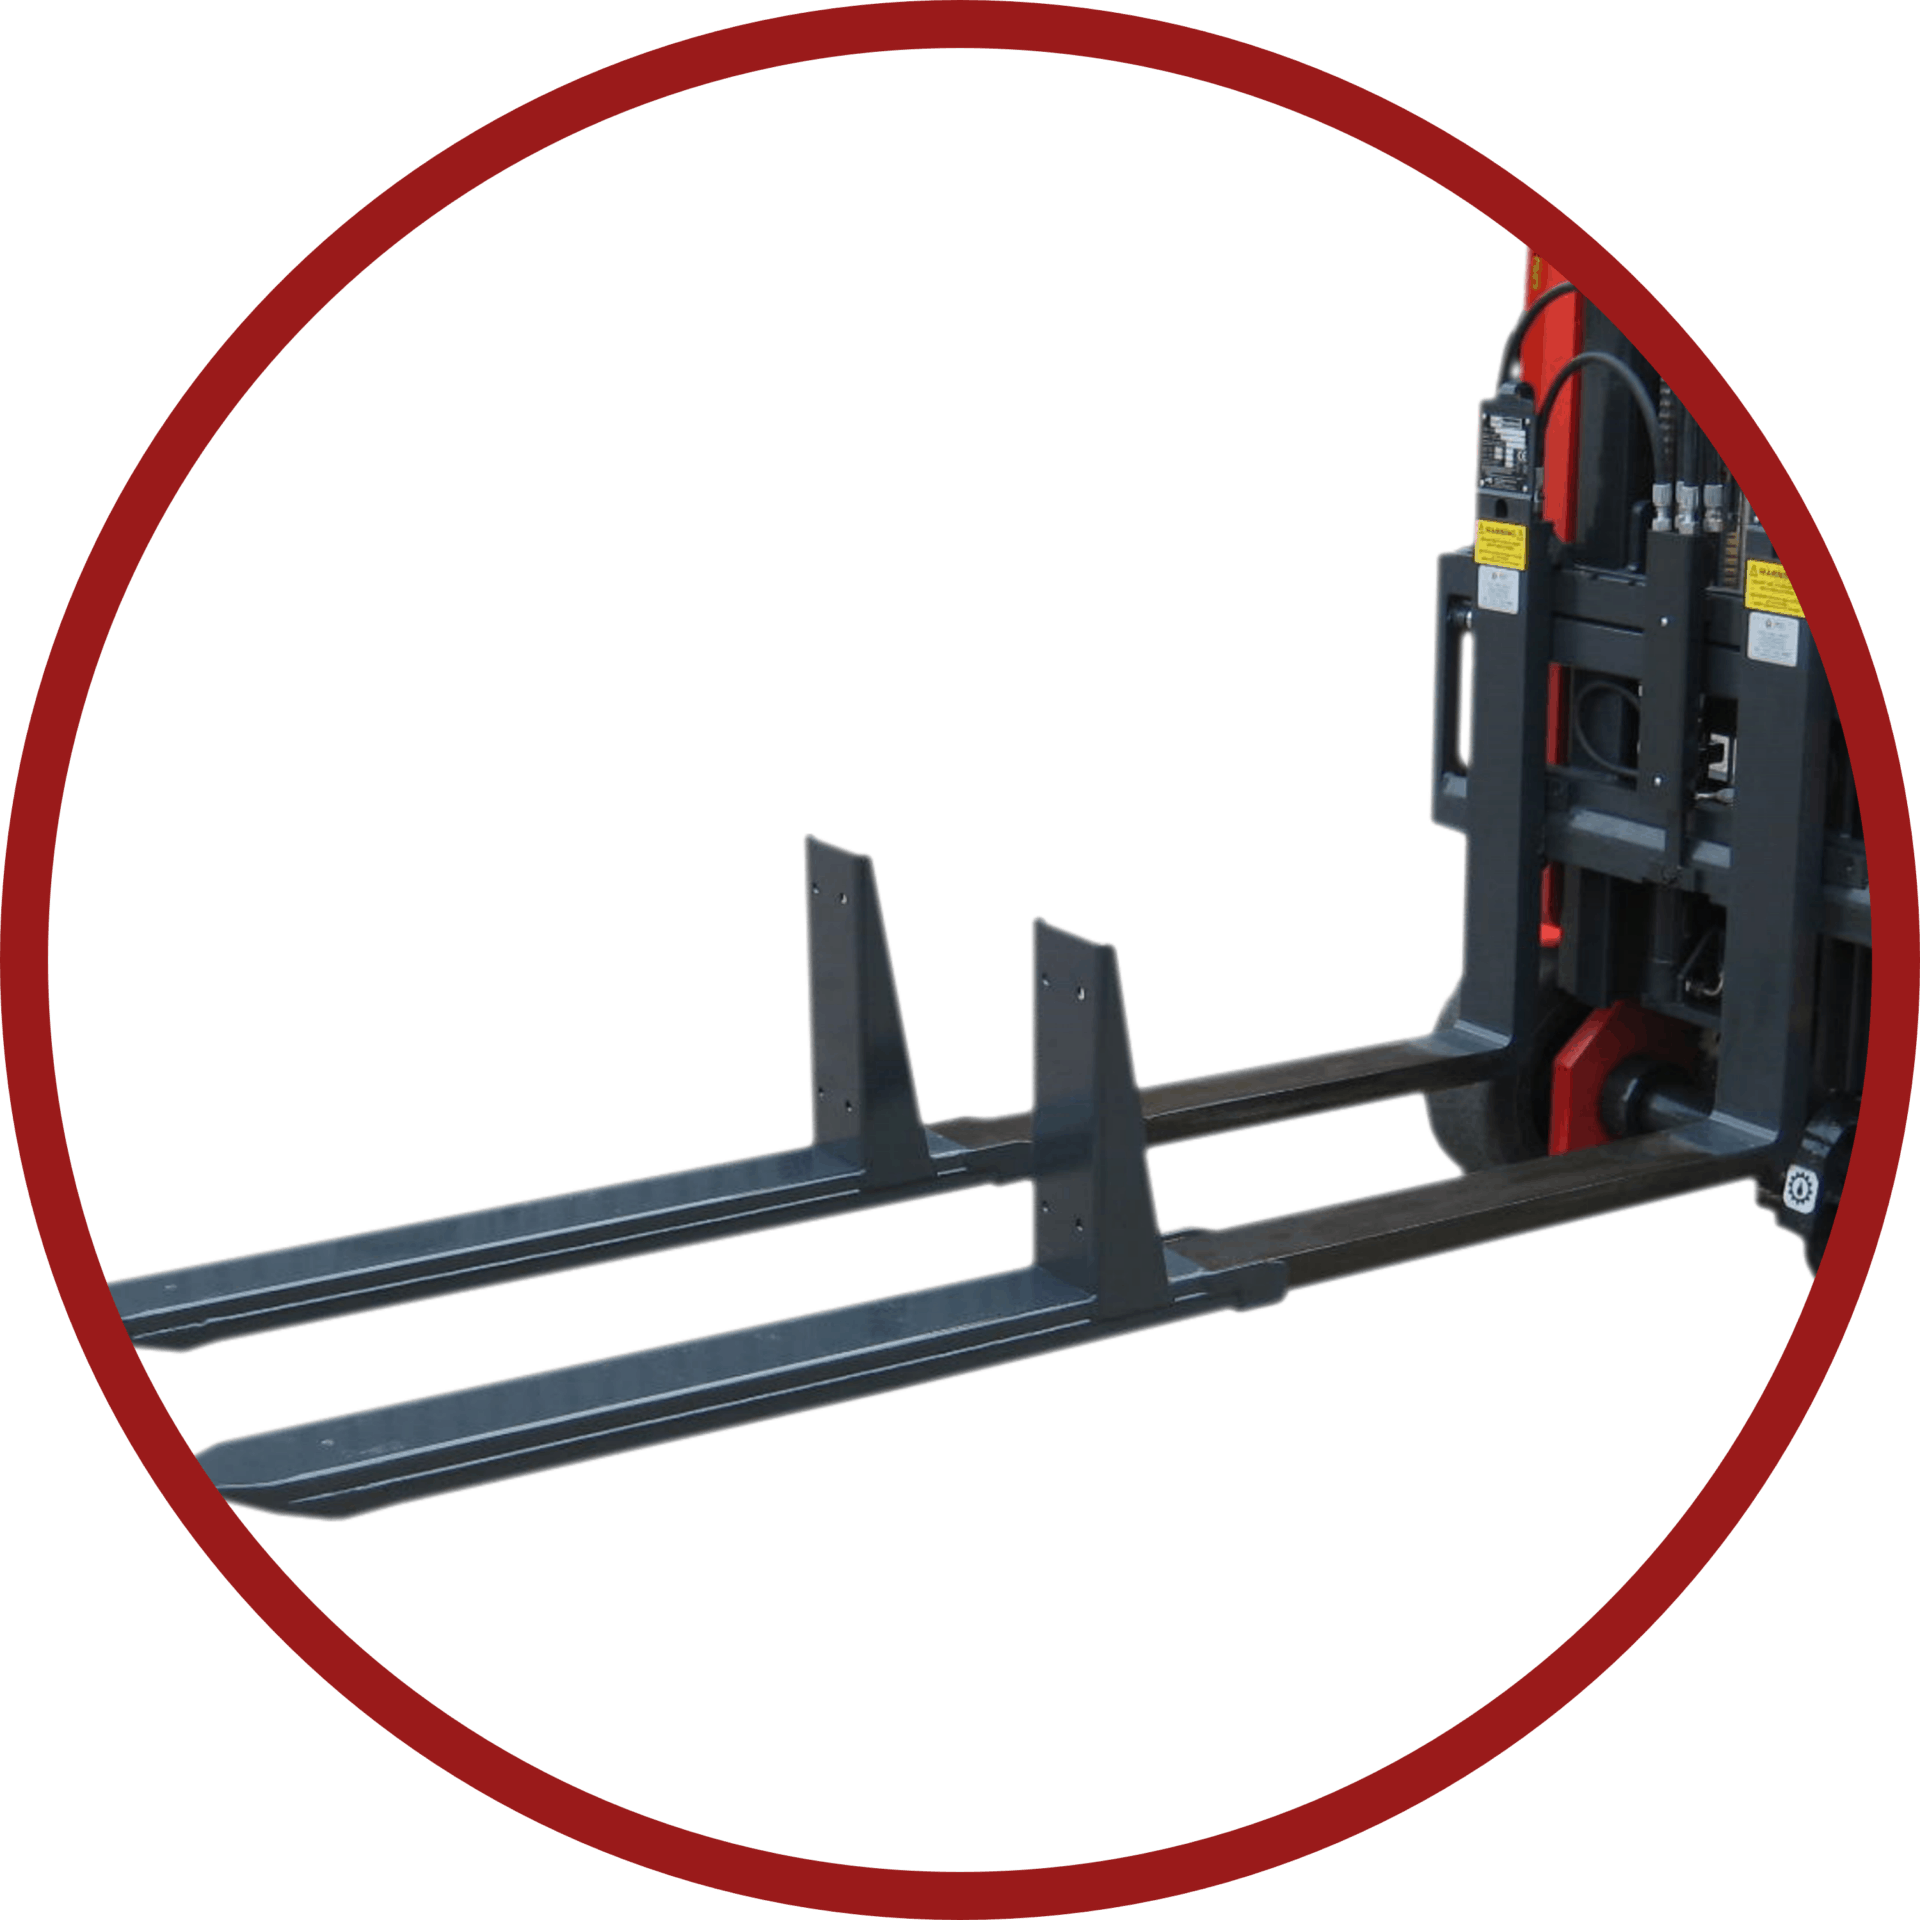 Two Pallet Telescopic Forks